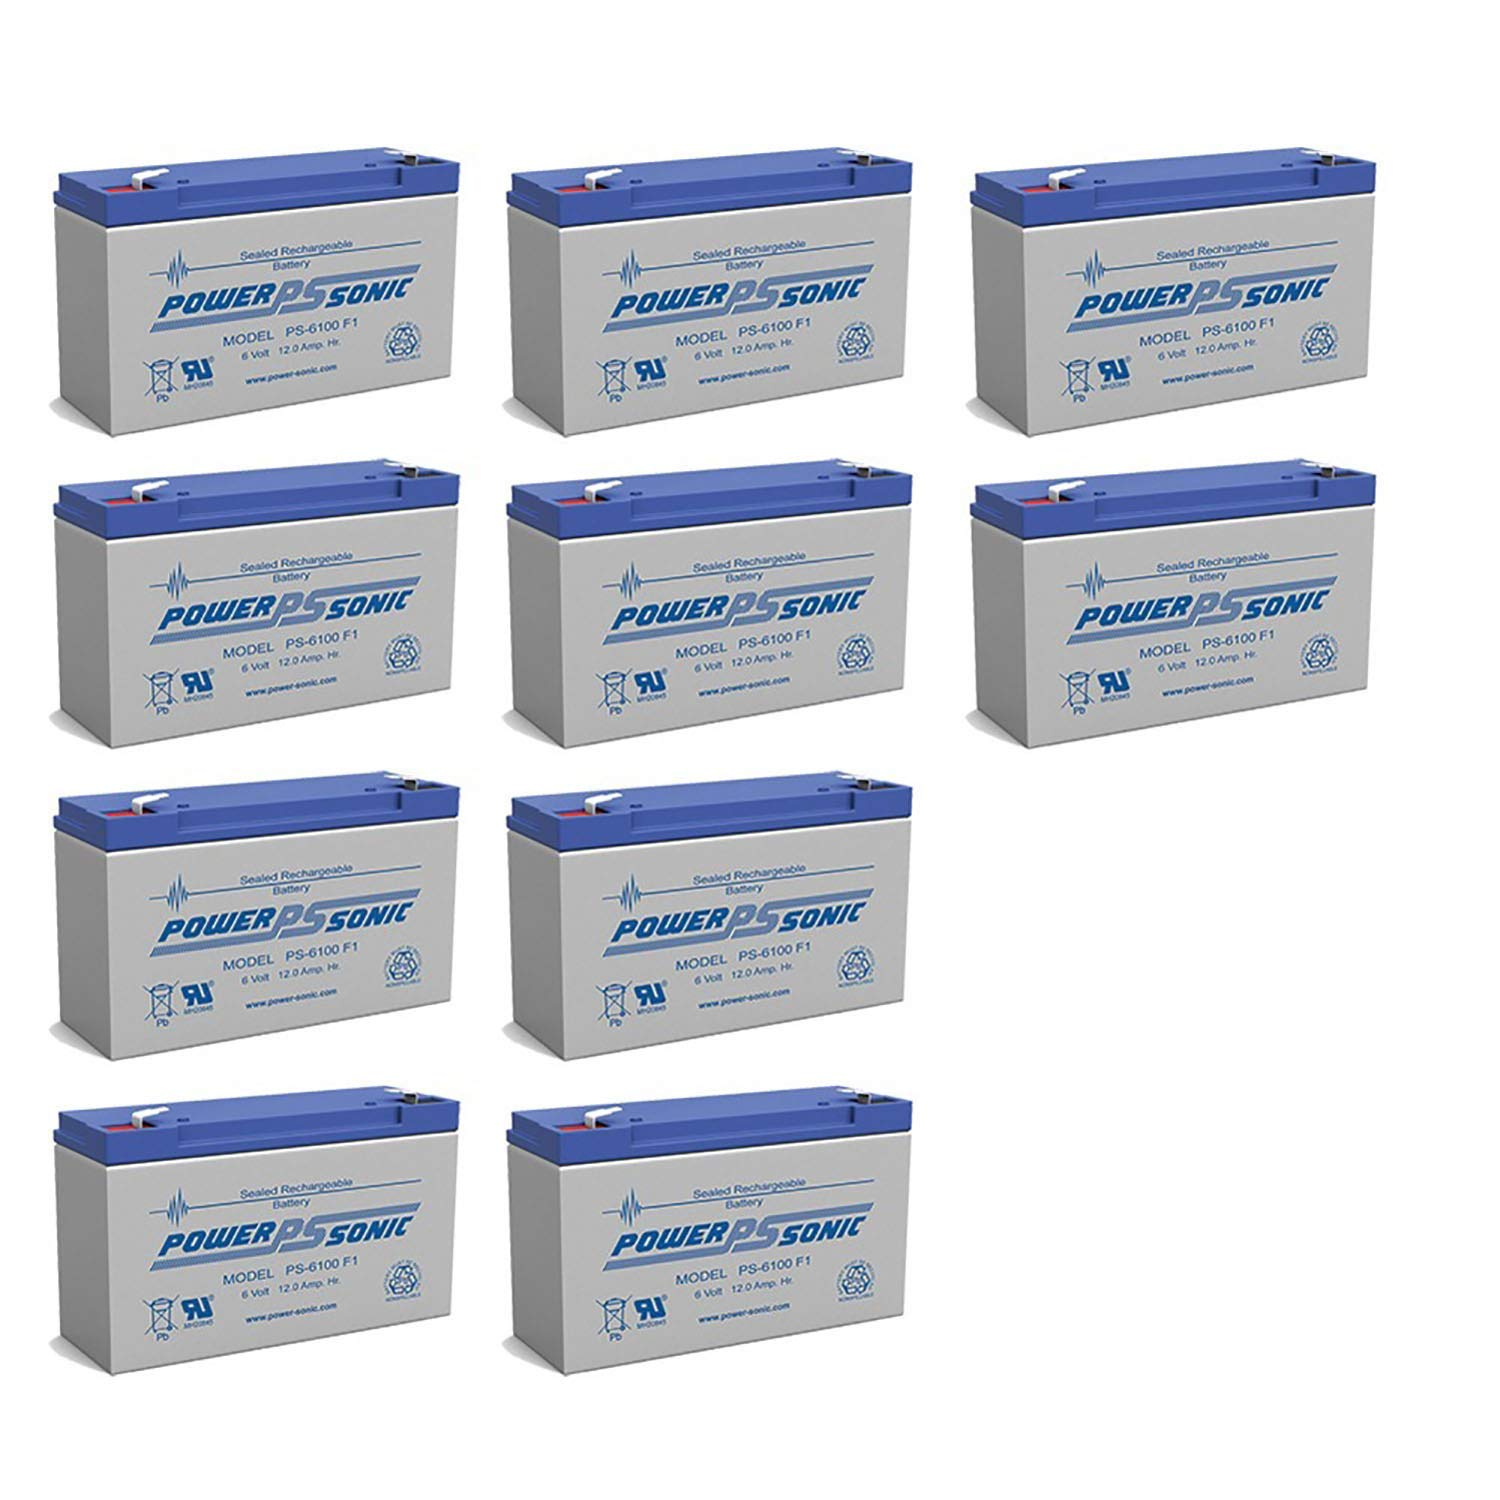 PS-6100 6V 12AH UPS Battery for Lithonia ELB-0612-10 Pack